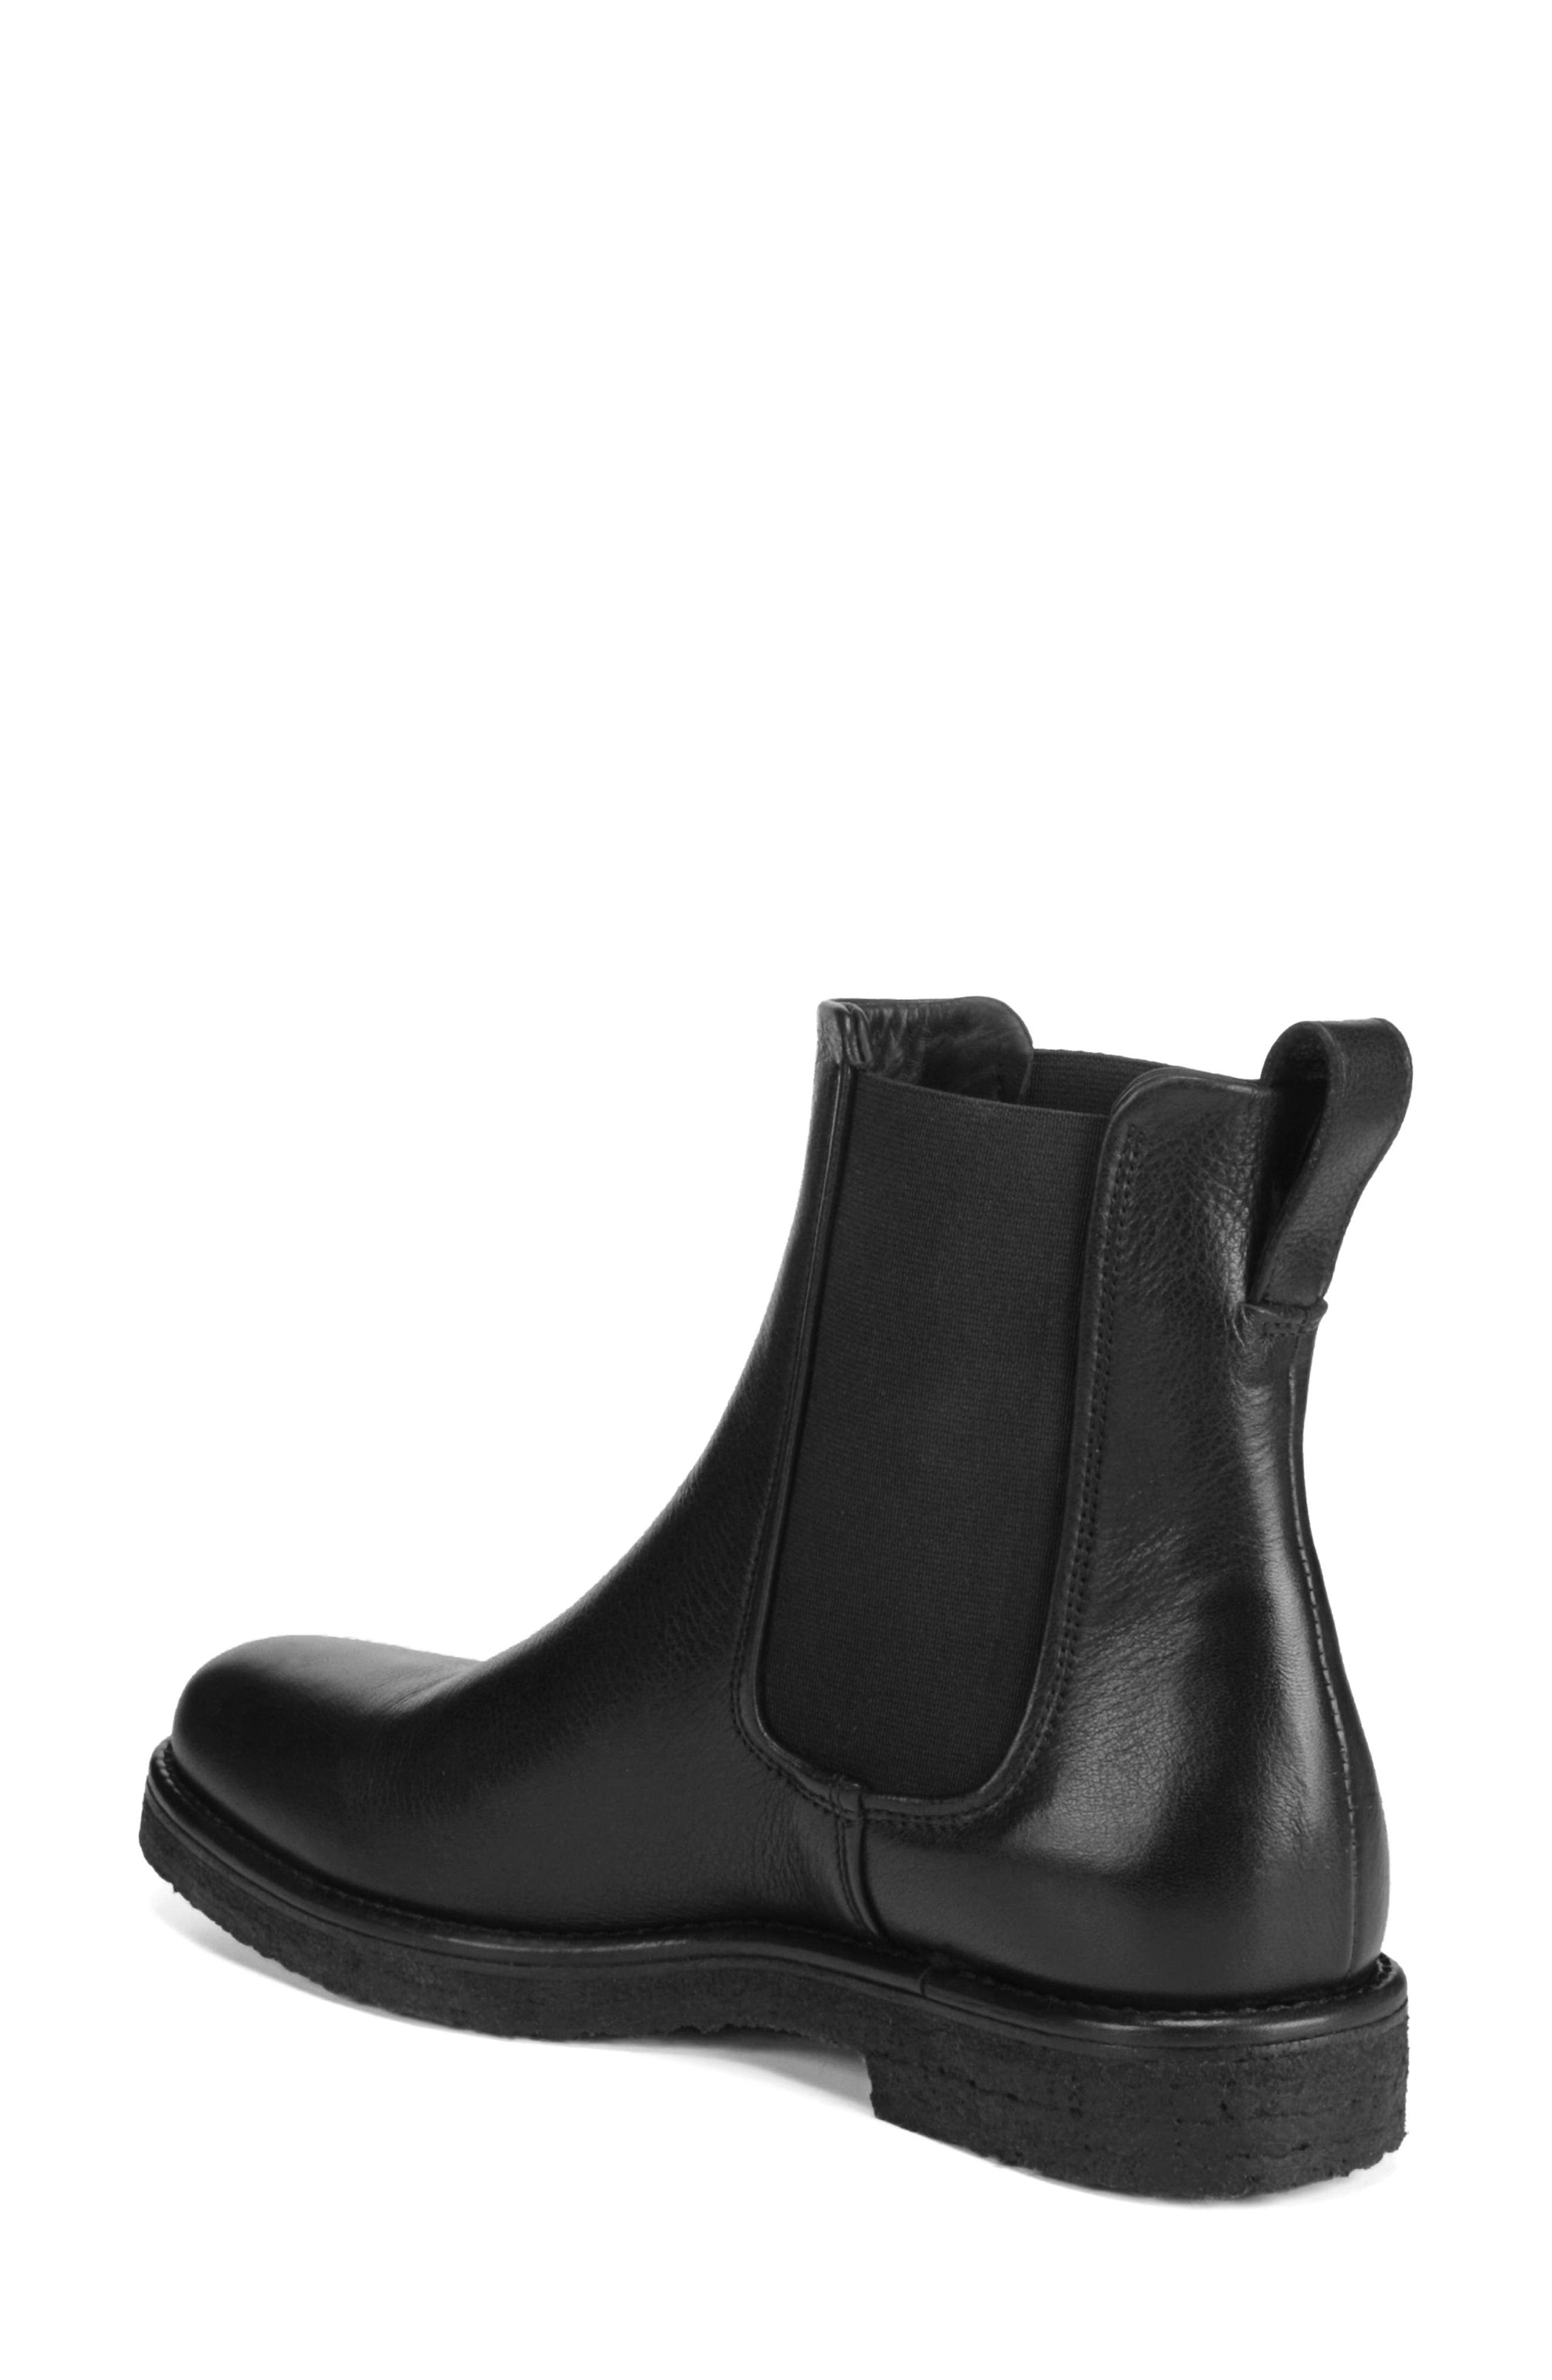 Cressler Chelsea Bootie,                             Alternate thumbnail 2, color,                             001